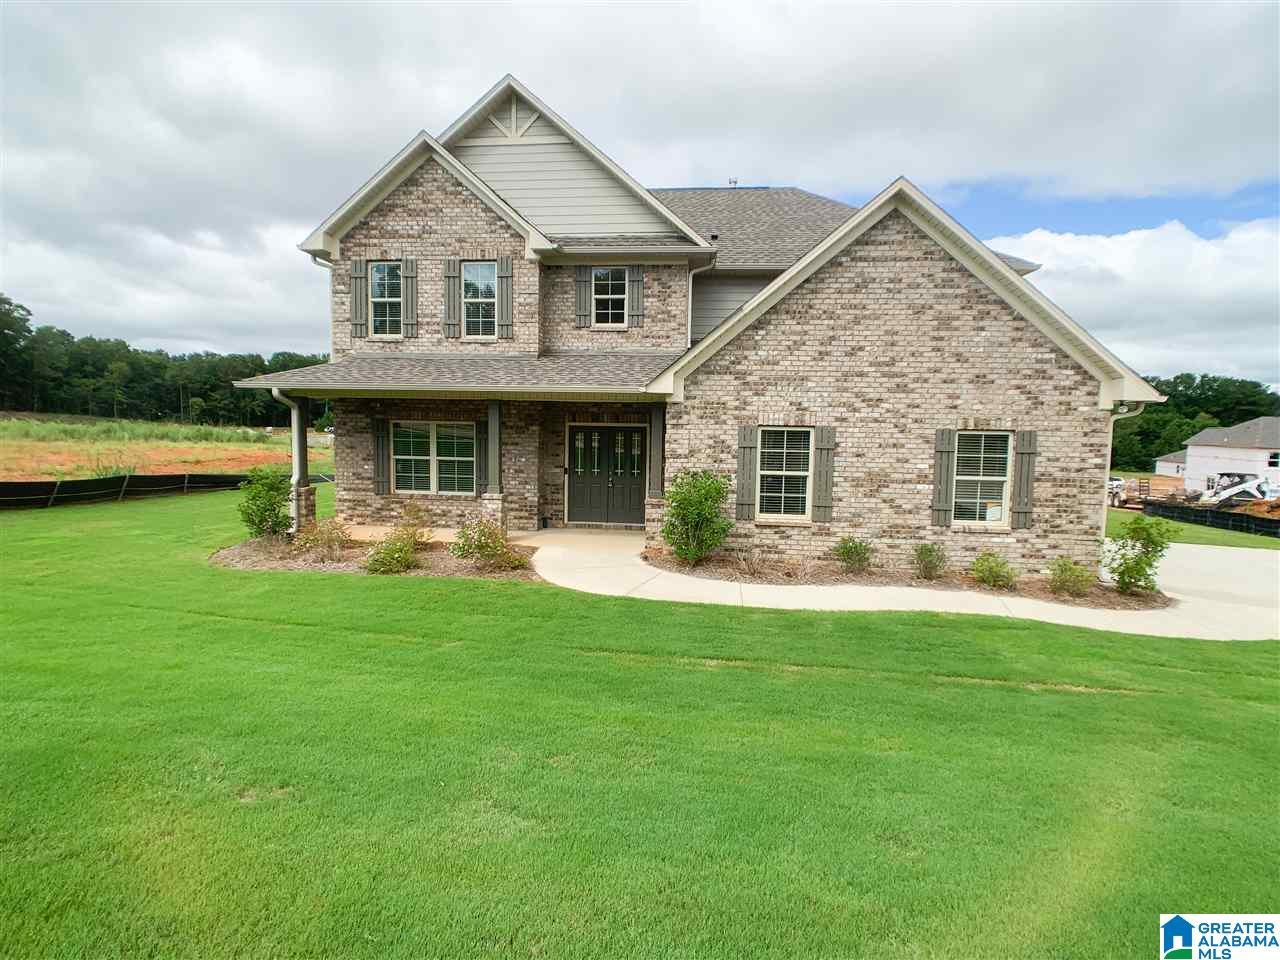 6445 CARROLL COVE PKWY, McCalla, AL 35111 - MLS#: 813212